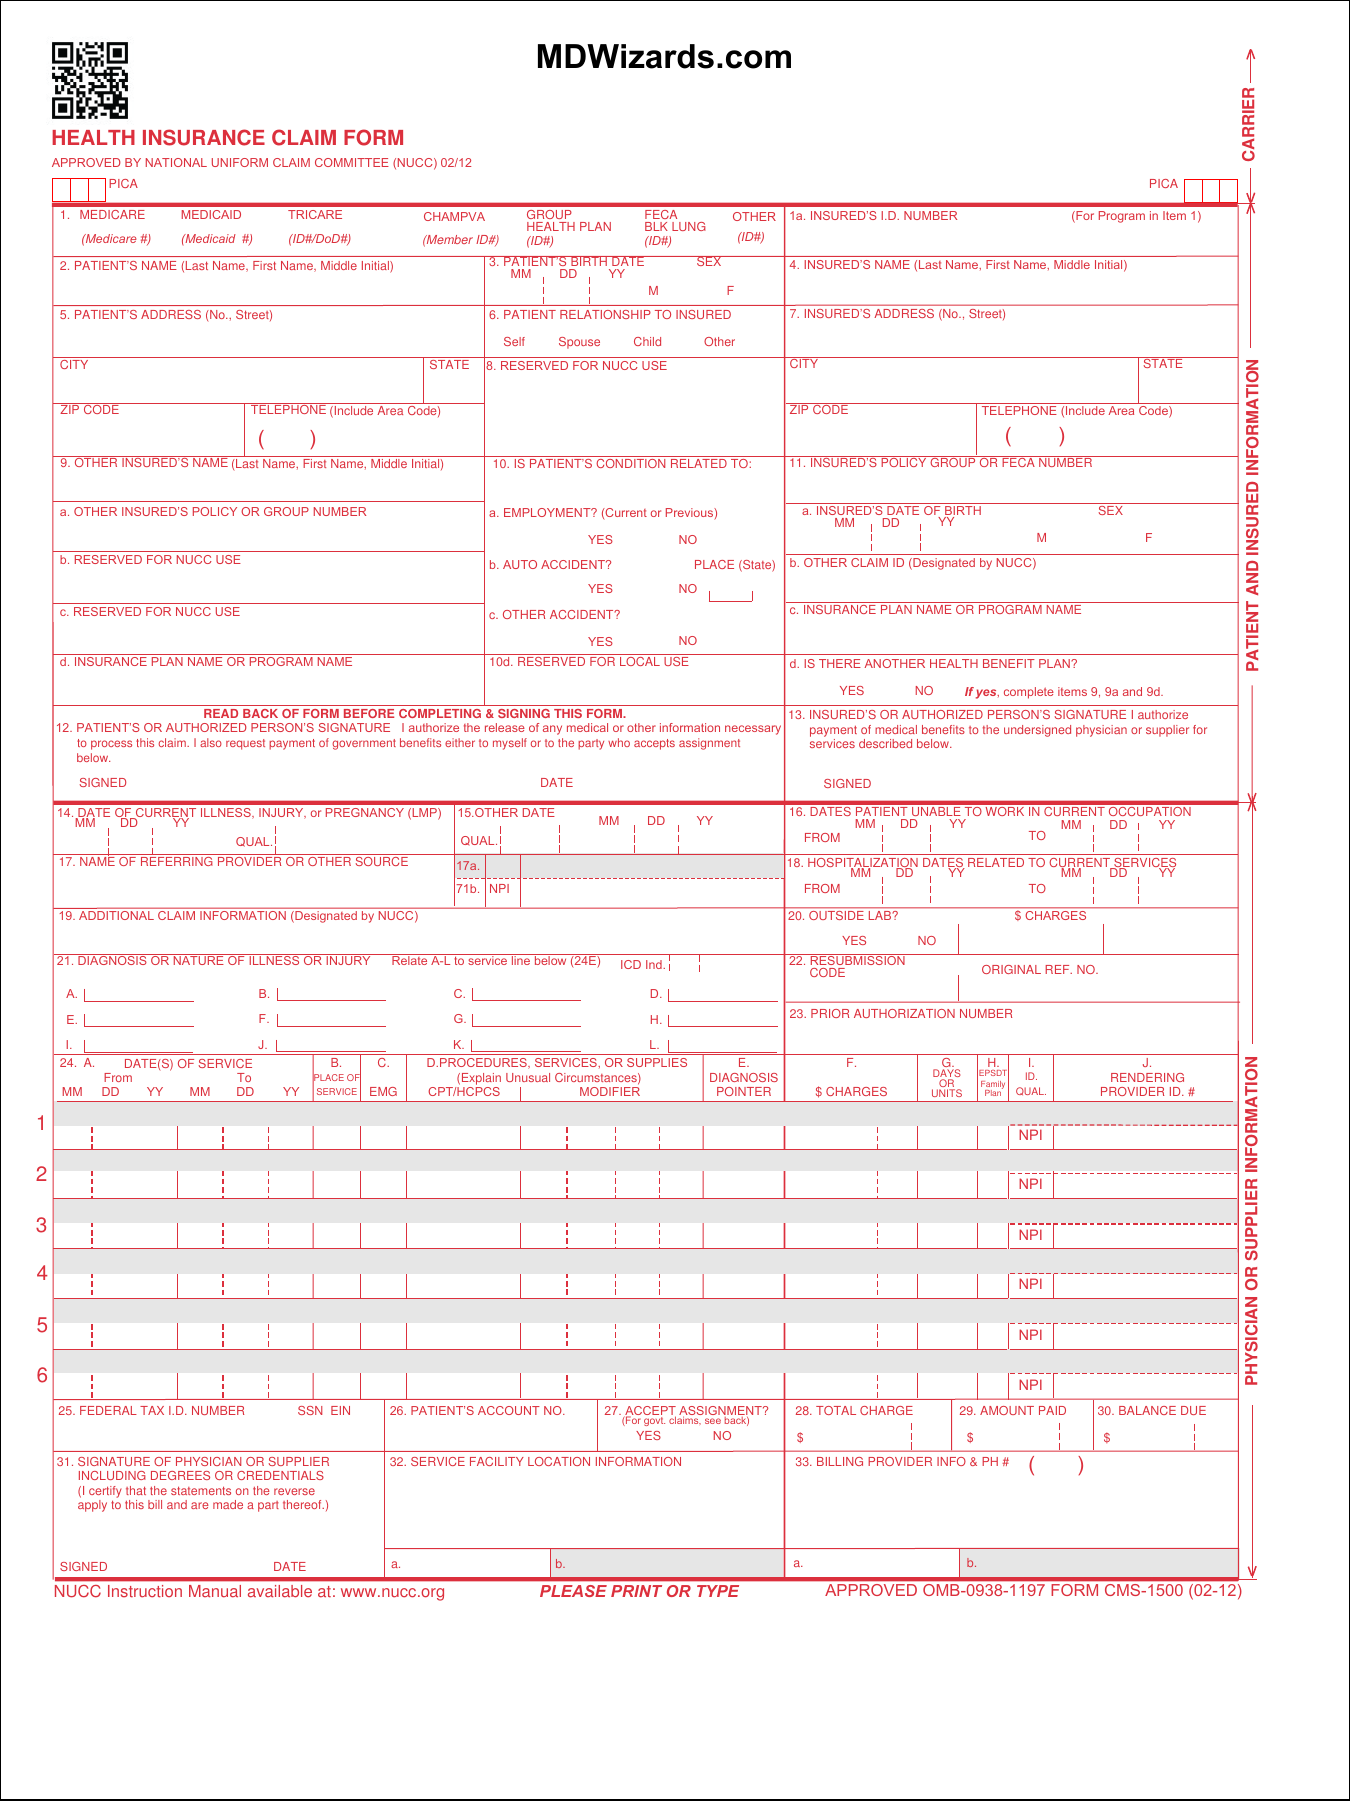 Fillable HCFA 1500 Claim Form